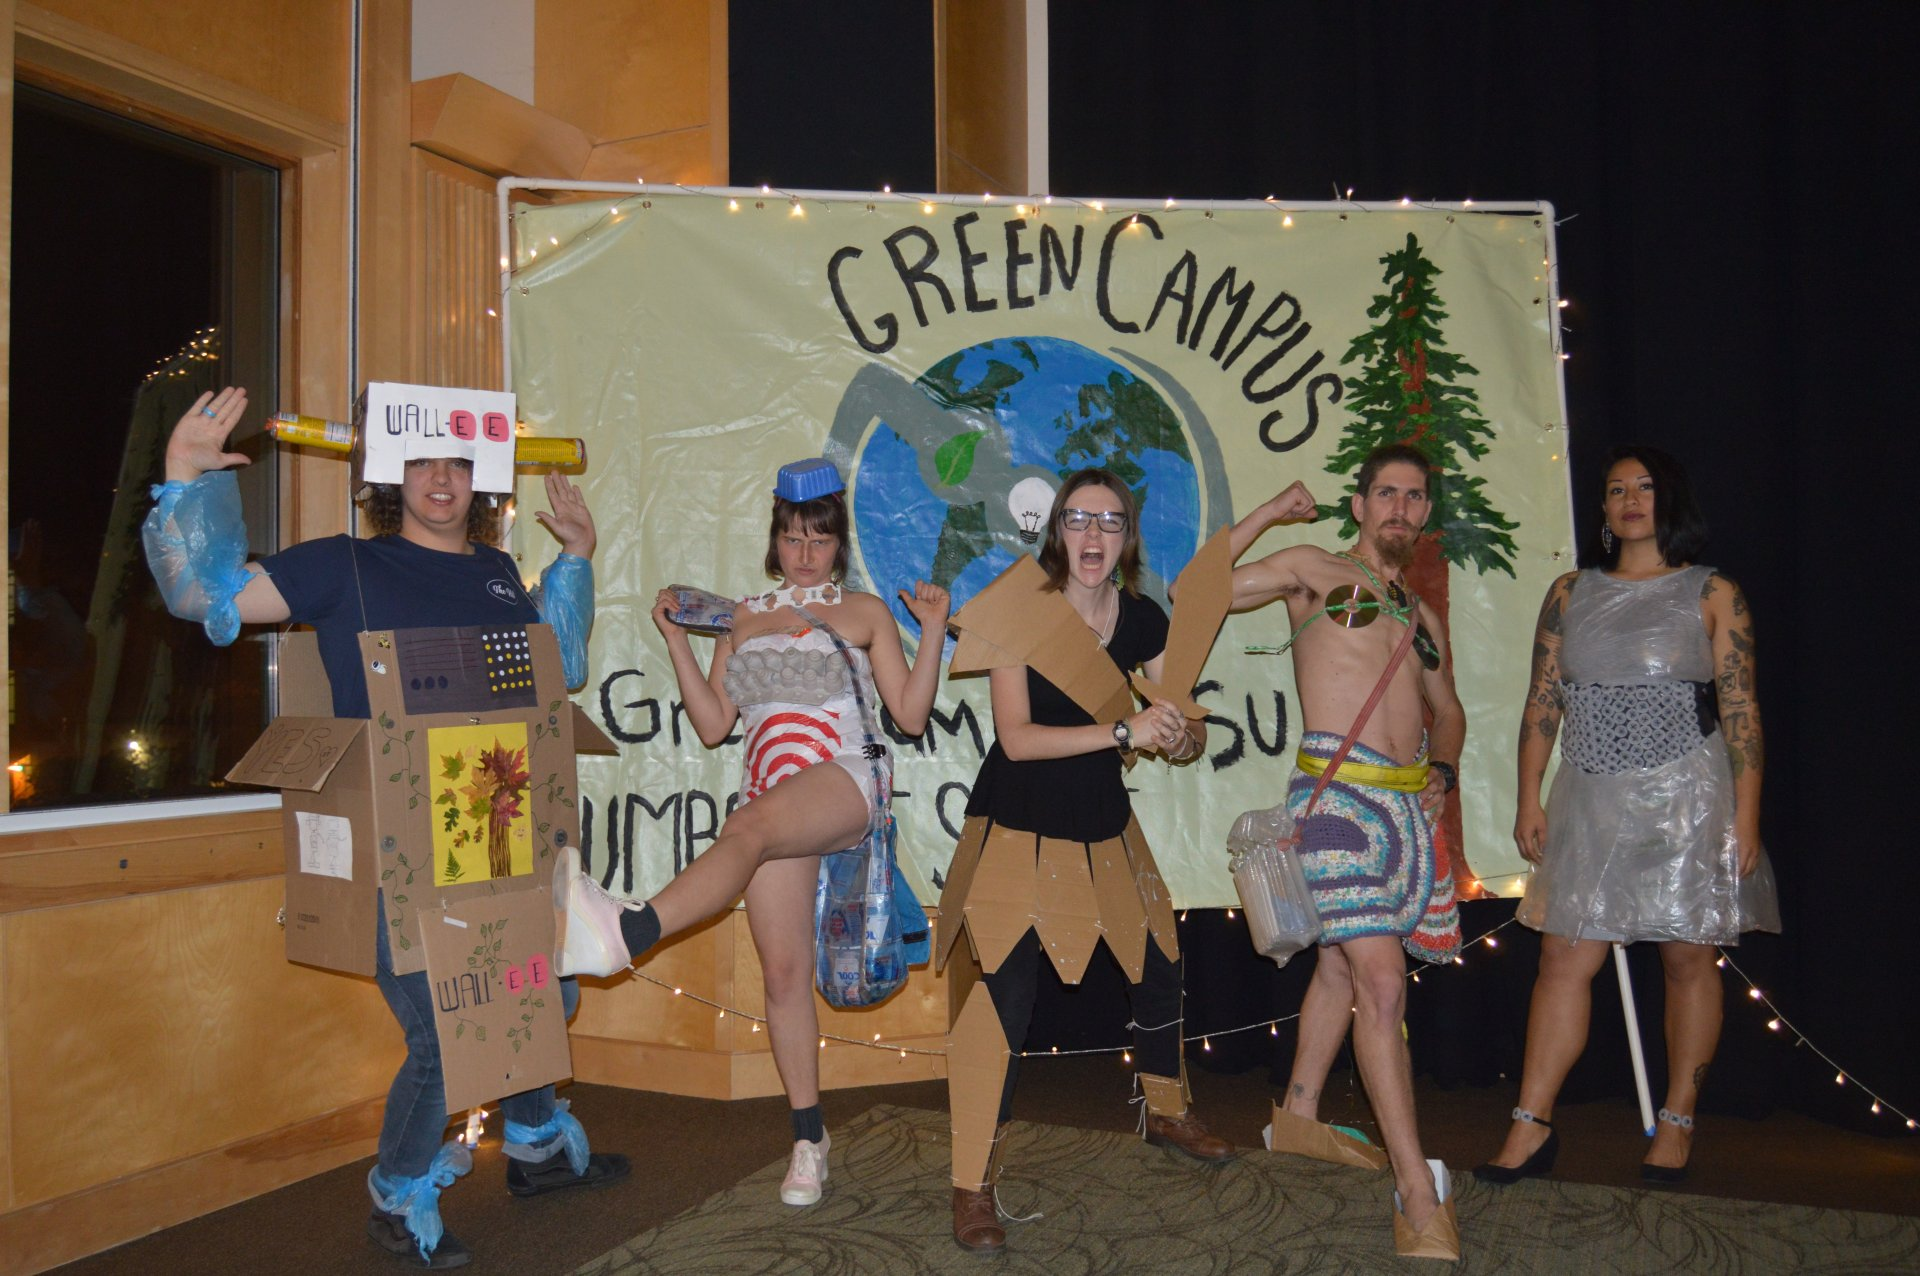 The competitors in the Green Campus Trashion Show strike an action pose right after they walked across stage. The Trashion Show intended to raise awareness about trash and display alternative uses for common products. | Photo by Collin Slavey